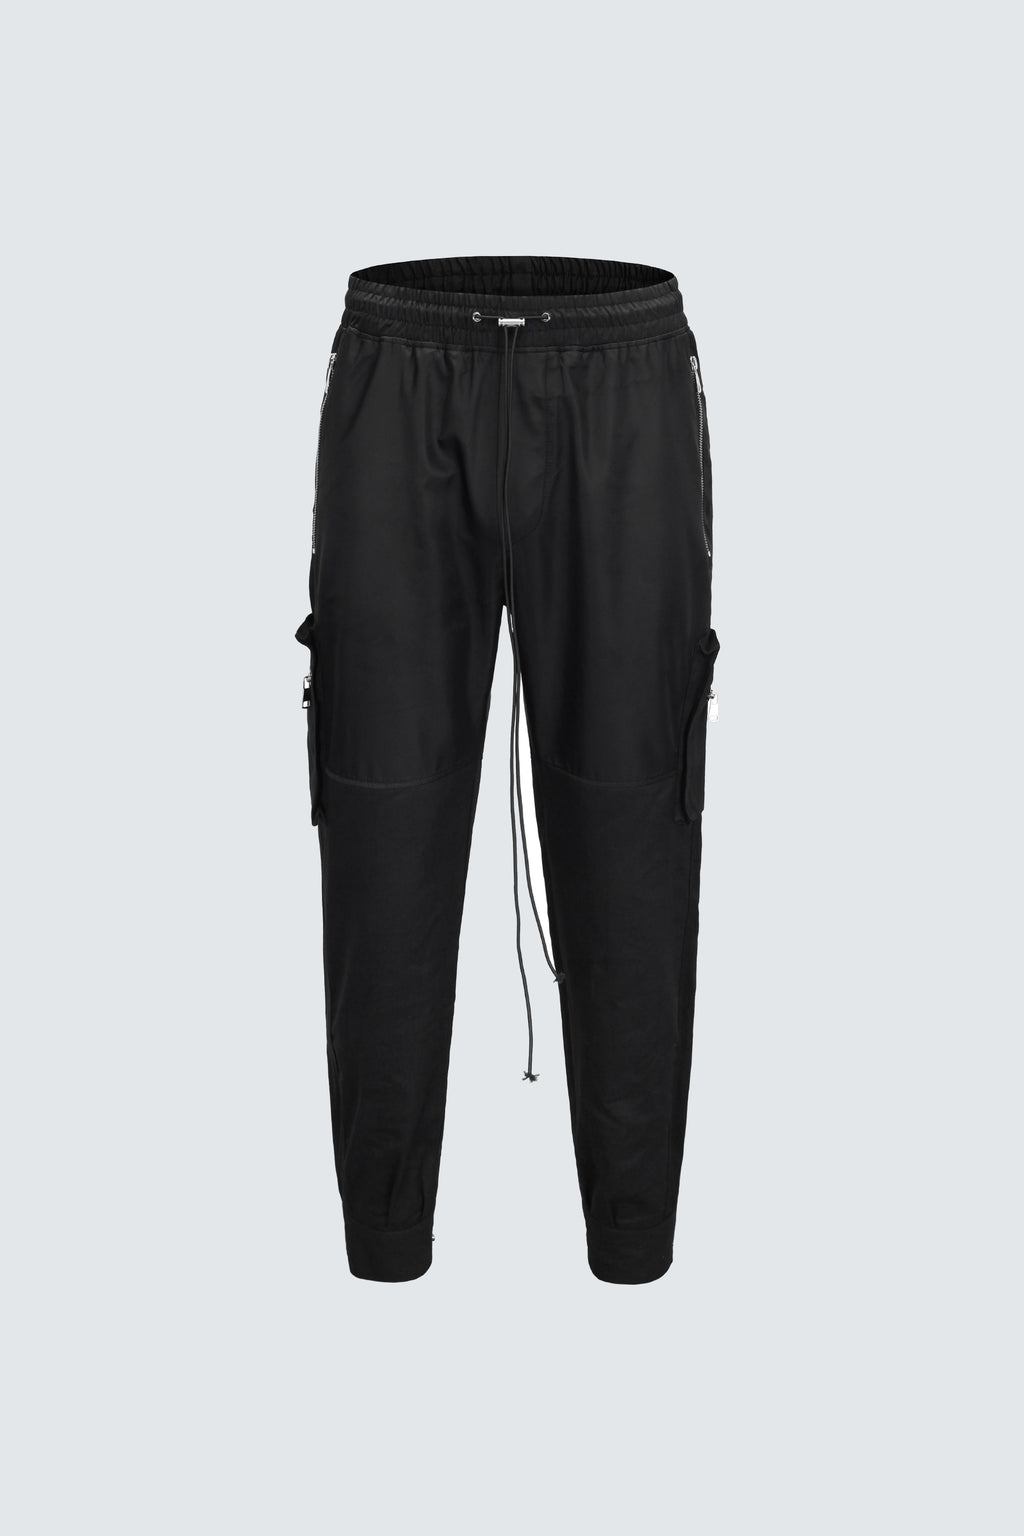 Phantom Cargo Pants - Black - SVPPLY. STUDIOS